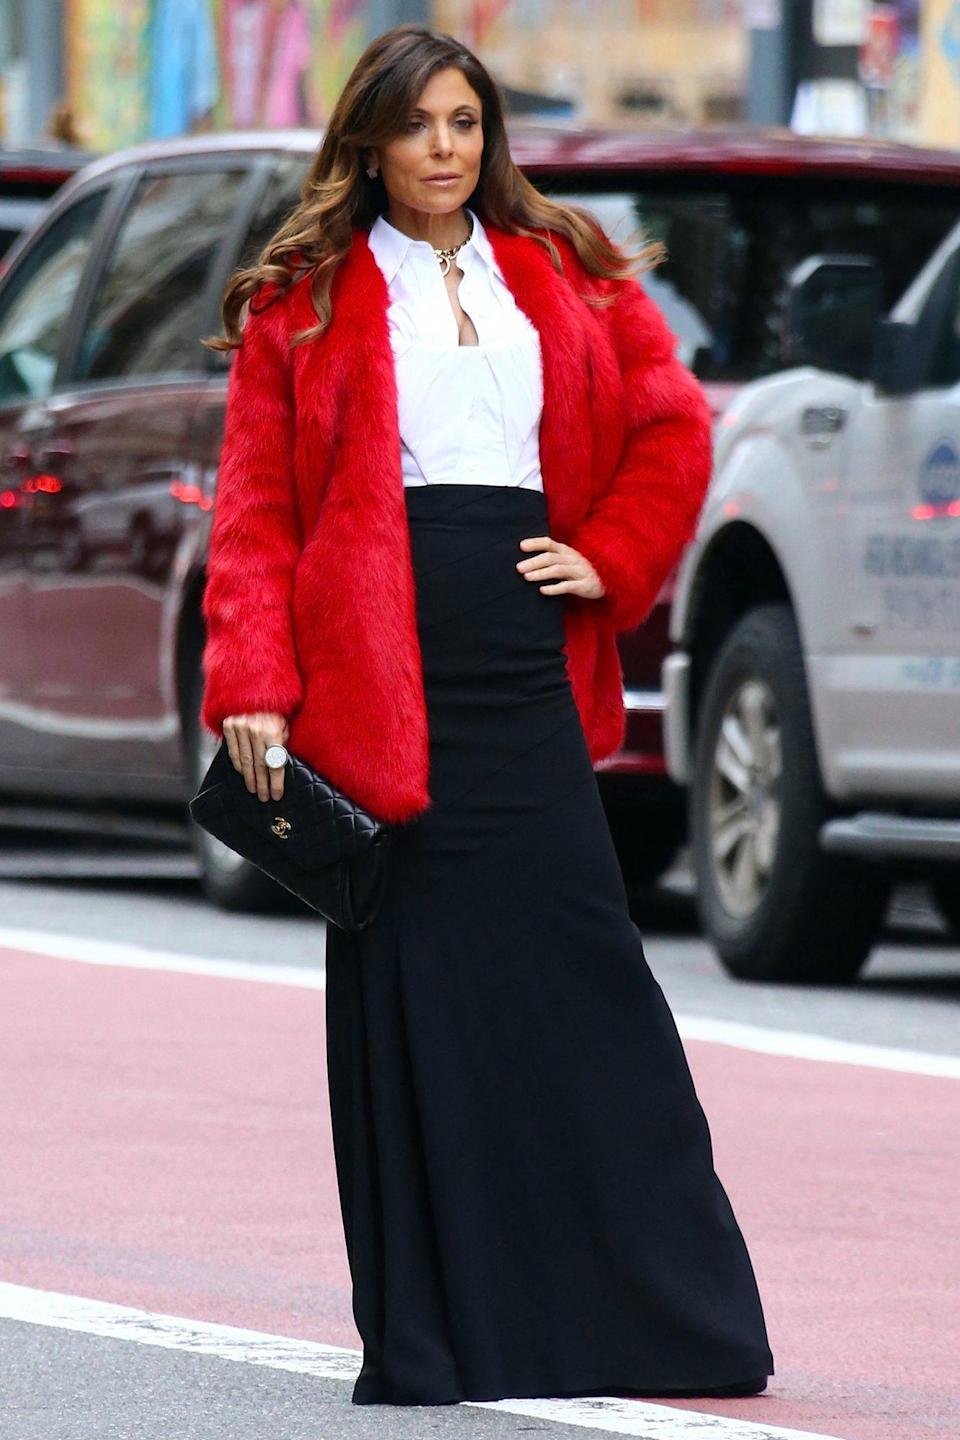 <p>Bethenny Frankel looks all dolled up in a red faux fur coat as she makes her way through N.Y.C.'s Soho neighborhood on Tuesday.</p>